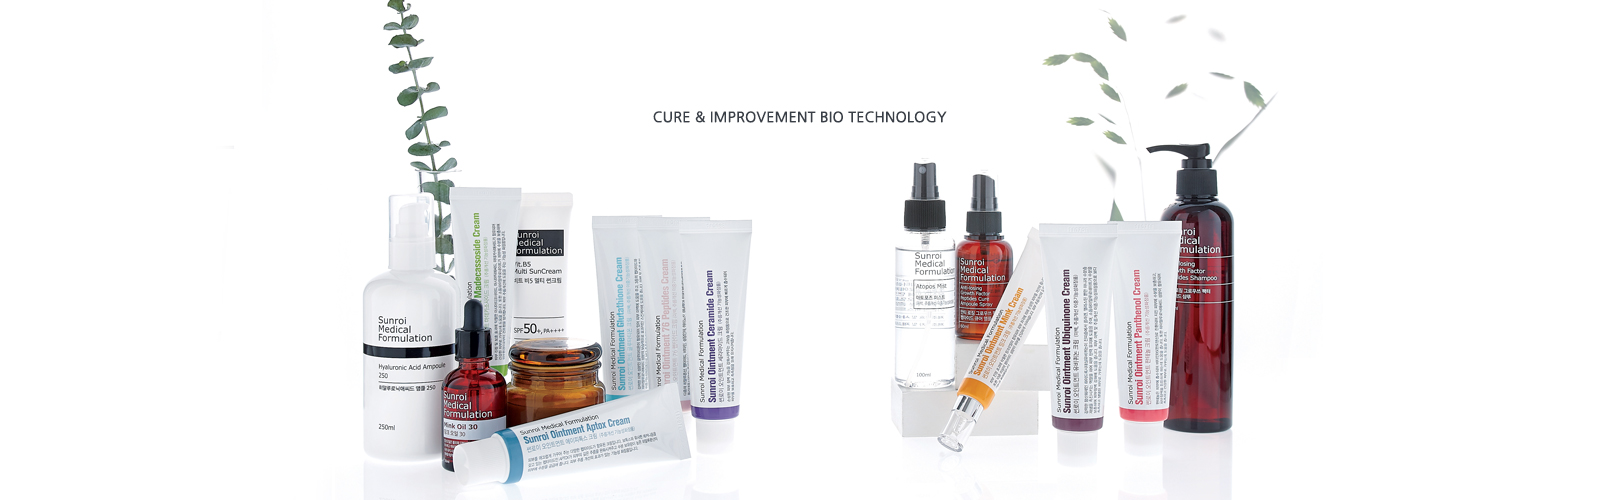 SUNROI Products